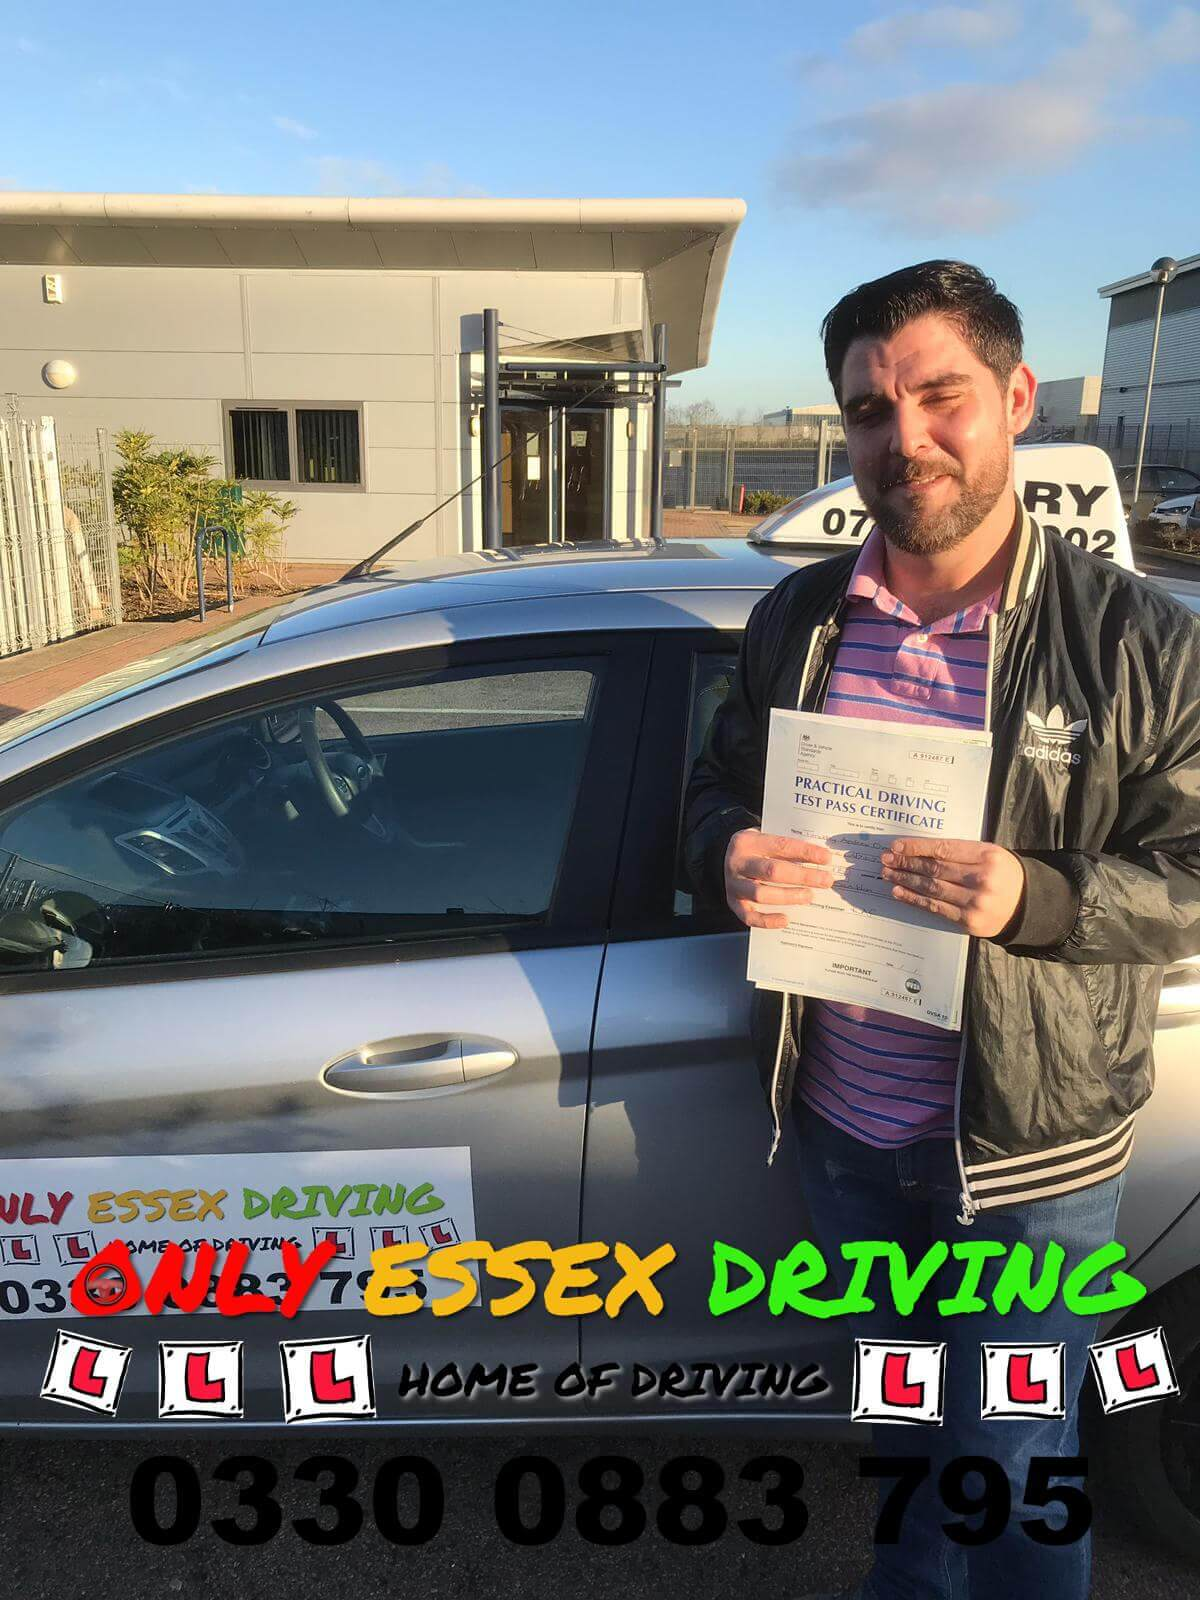 Well done to Tim for passing his driving test at Basildon test centre